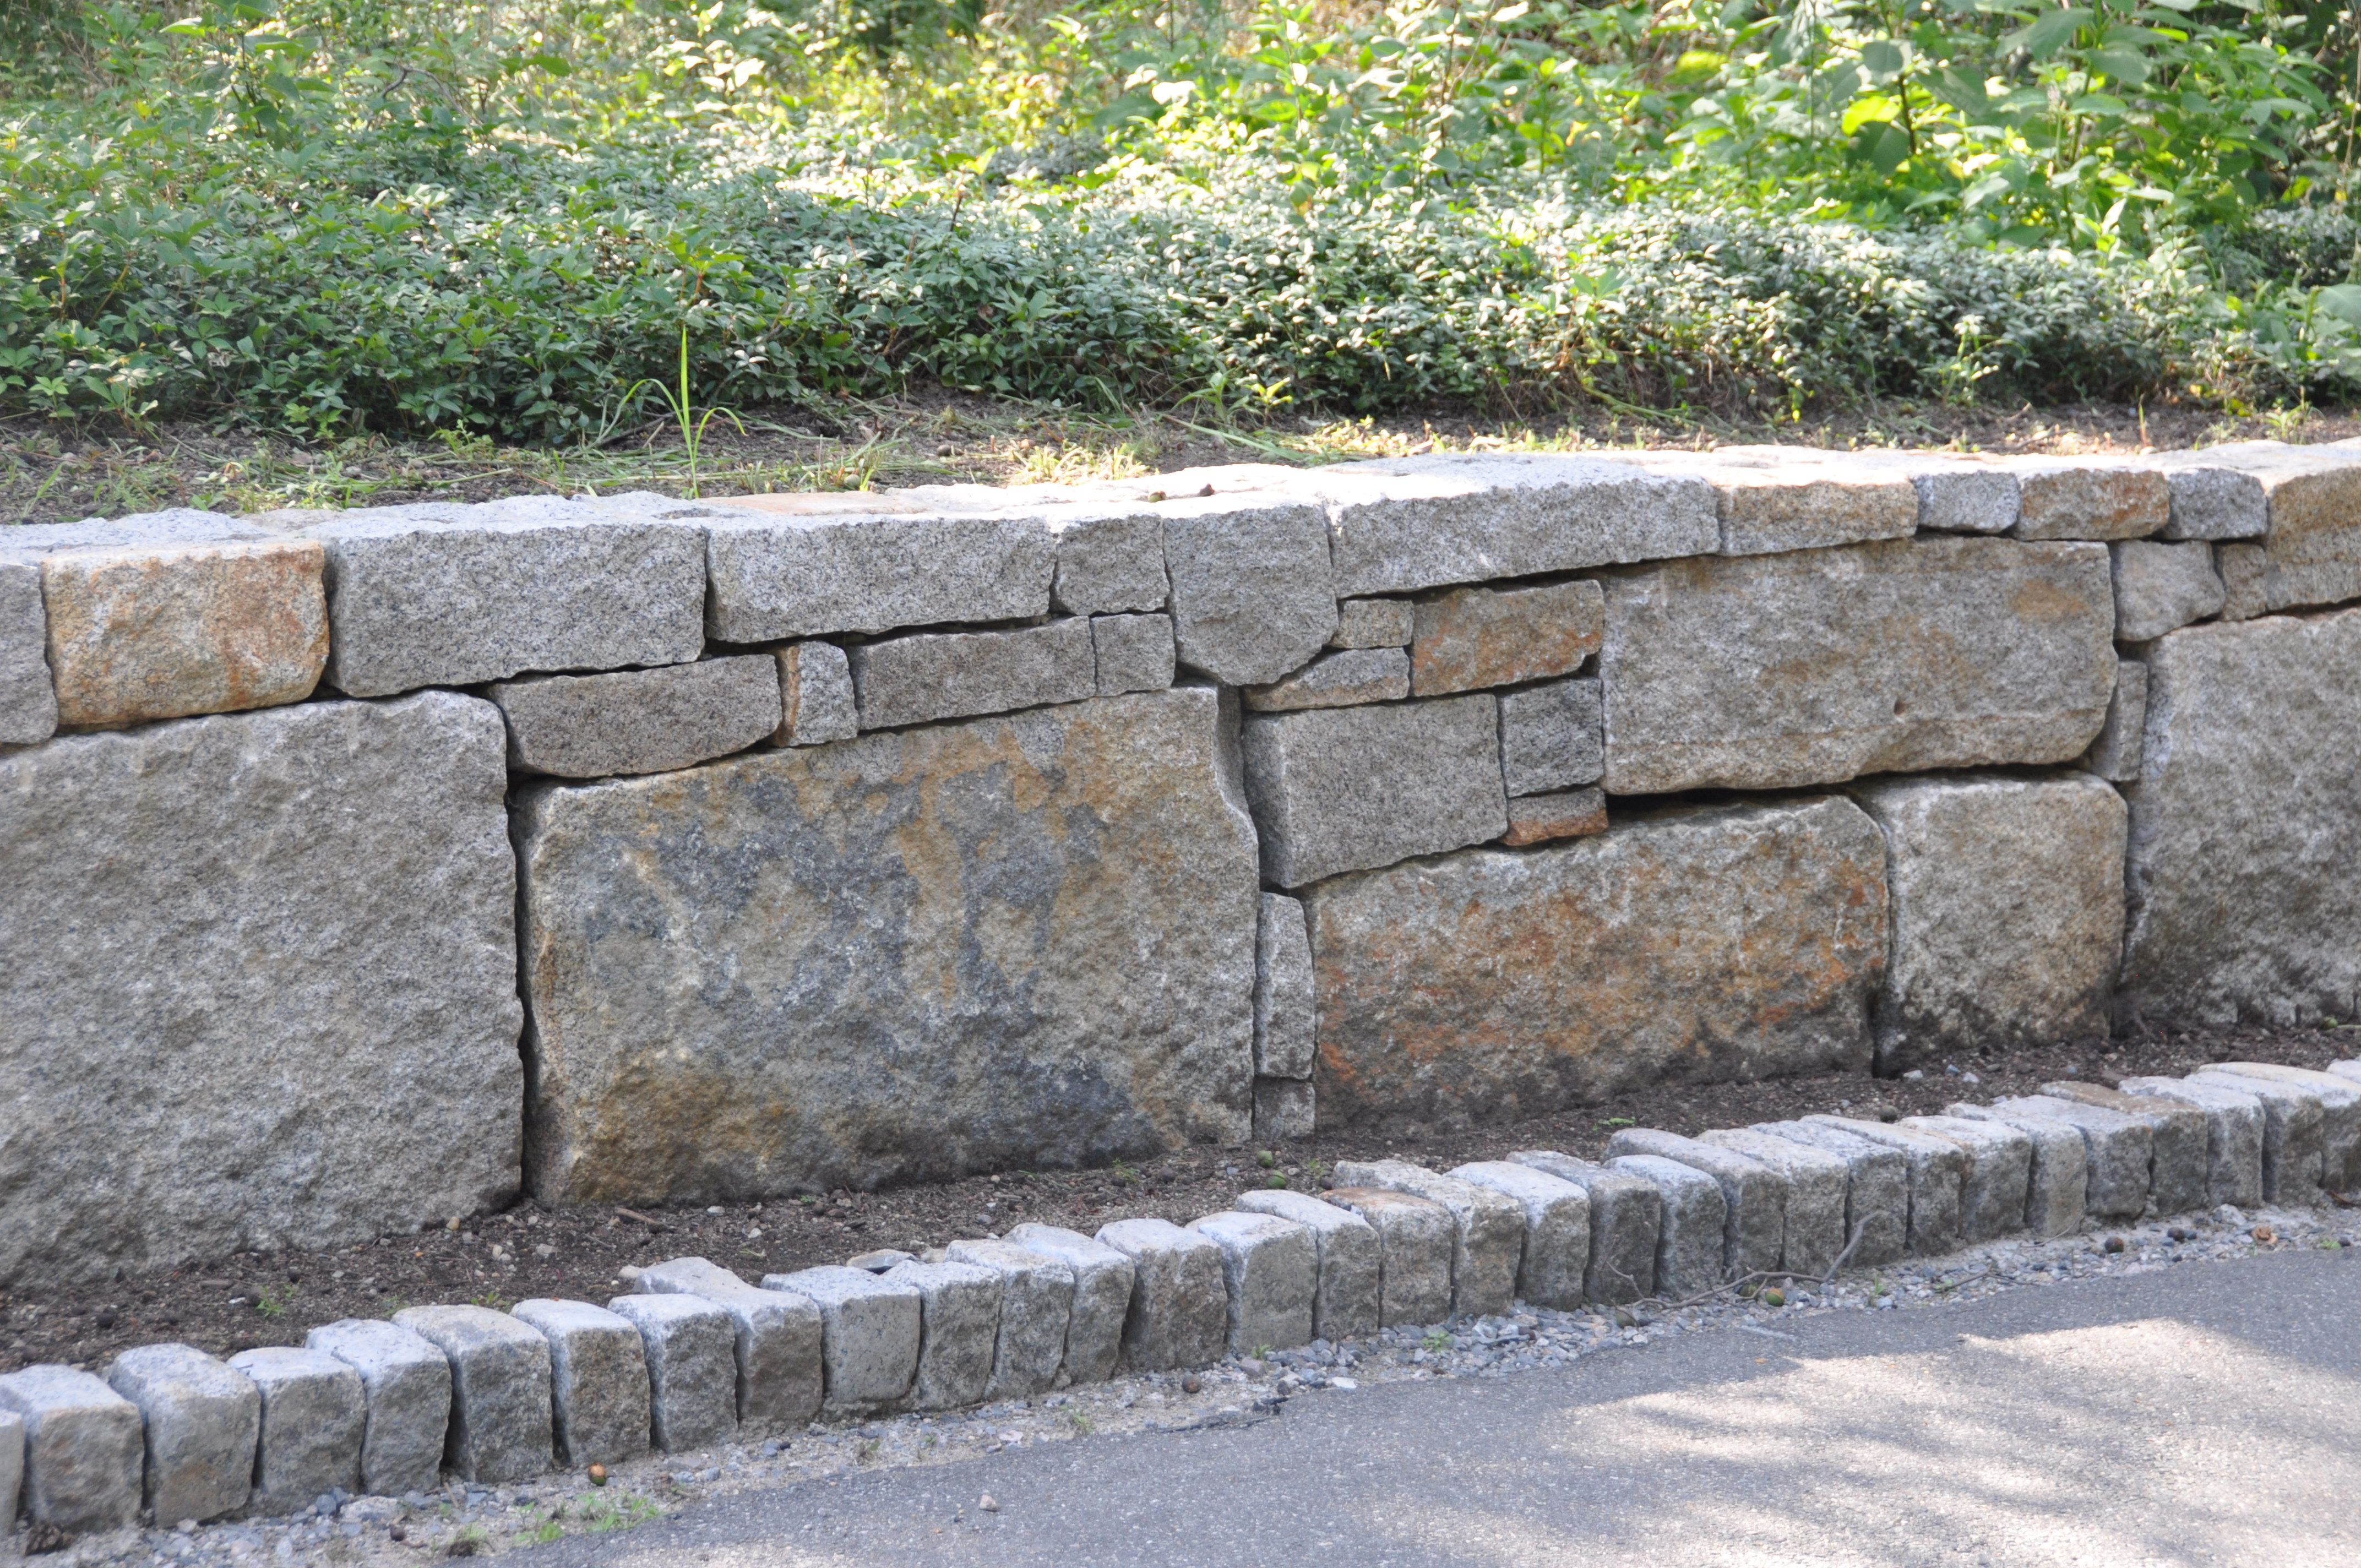 Building A Character Filled Wall With Reclaimed Granite Blocks Granite Blocks Landscape Design Stone Retaining Wall